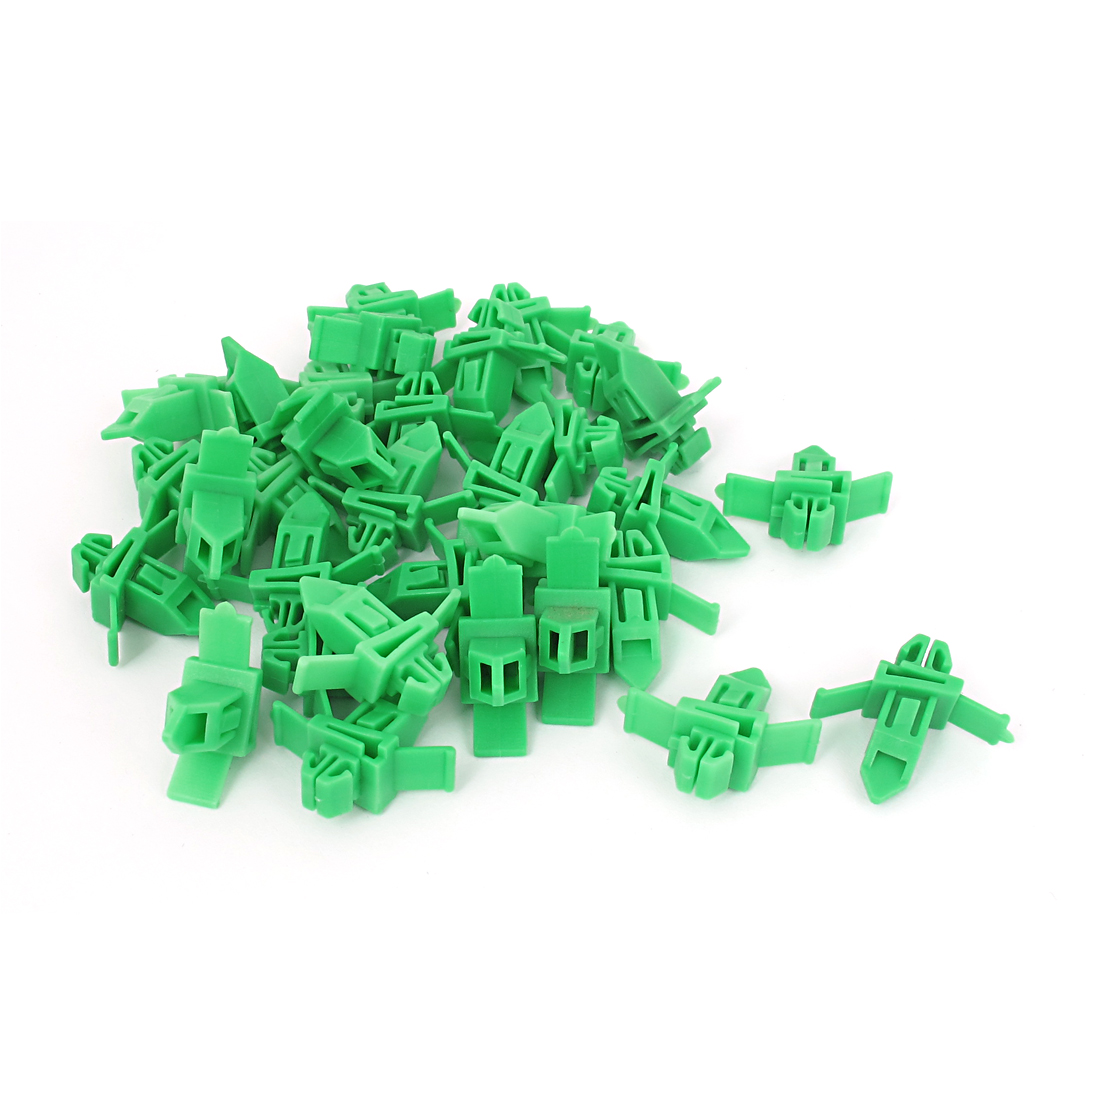 32 Pcs Green 9mmx7mm Hole Car Fender Trim Panel Mount Plastic Rivets for Toyota